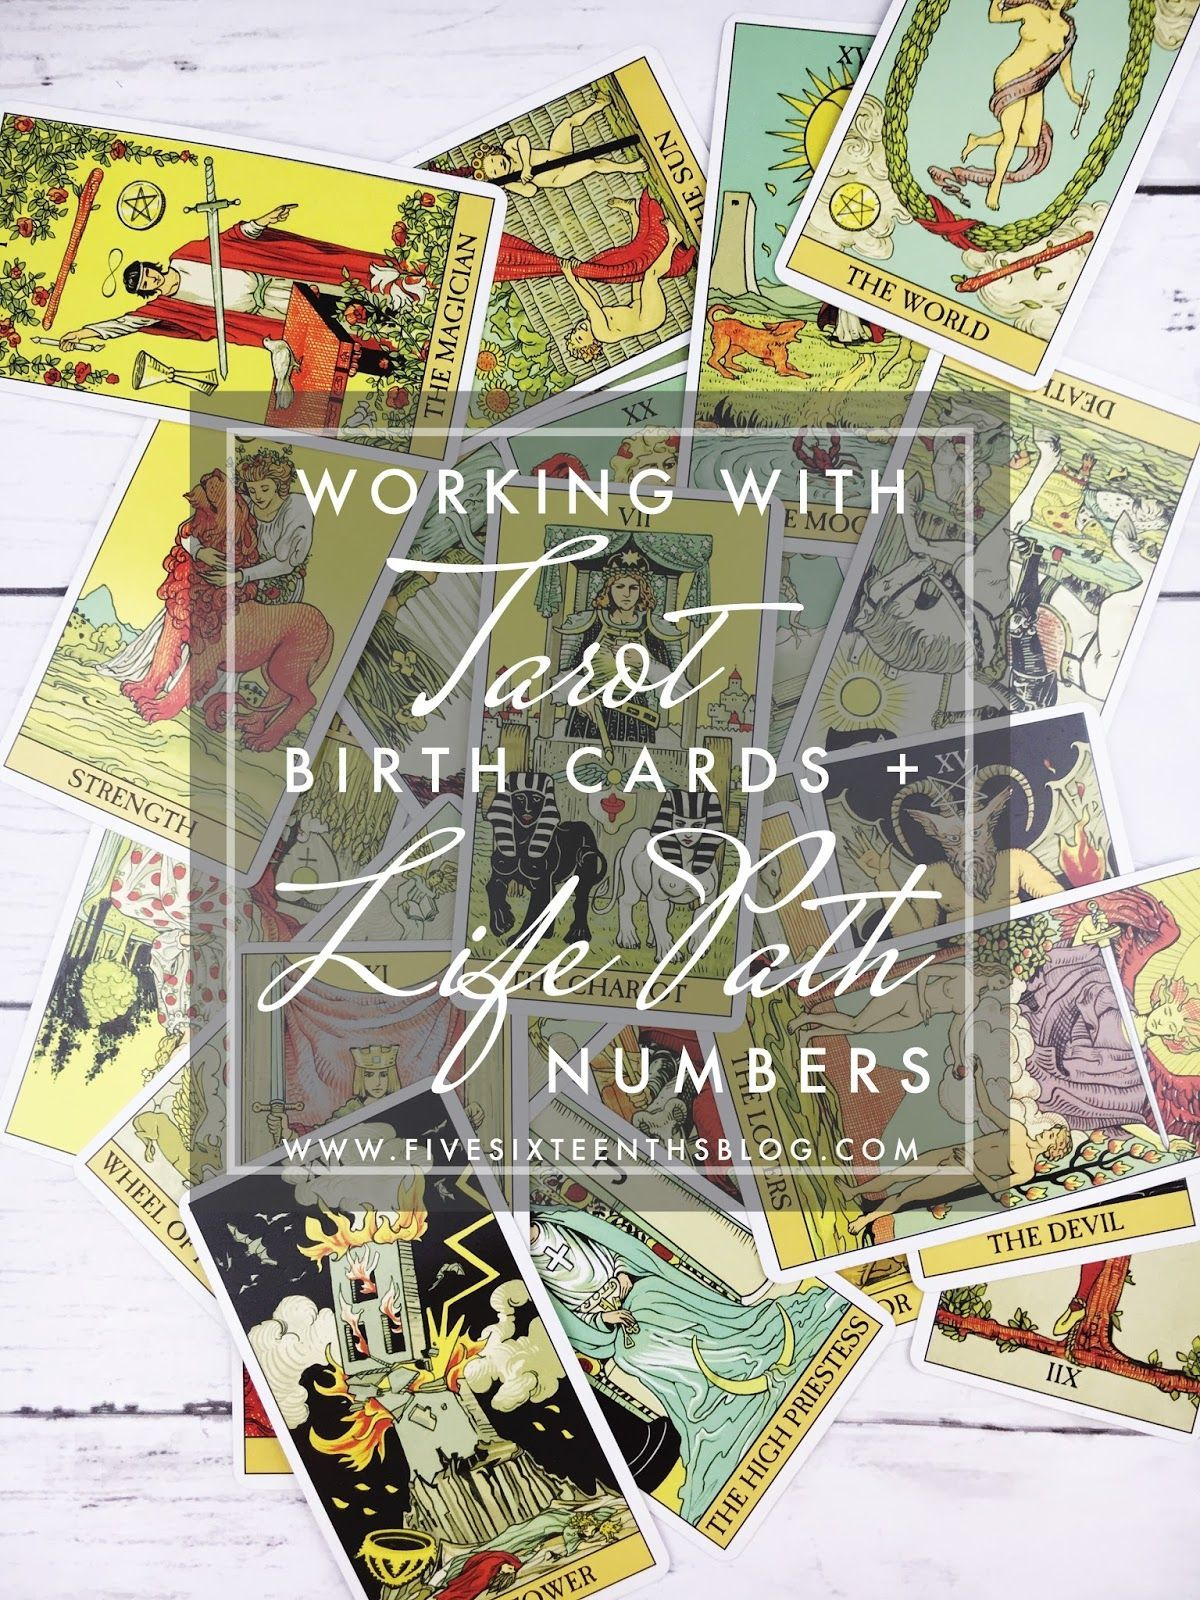 Tarot Diaries Tarot Birth Cards & Life Path Numbers If you haven t noticed there s been a lot of woo woo around these parts